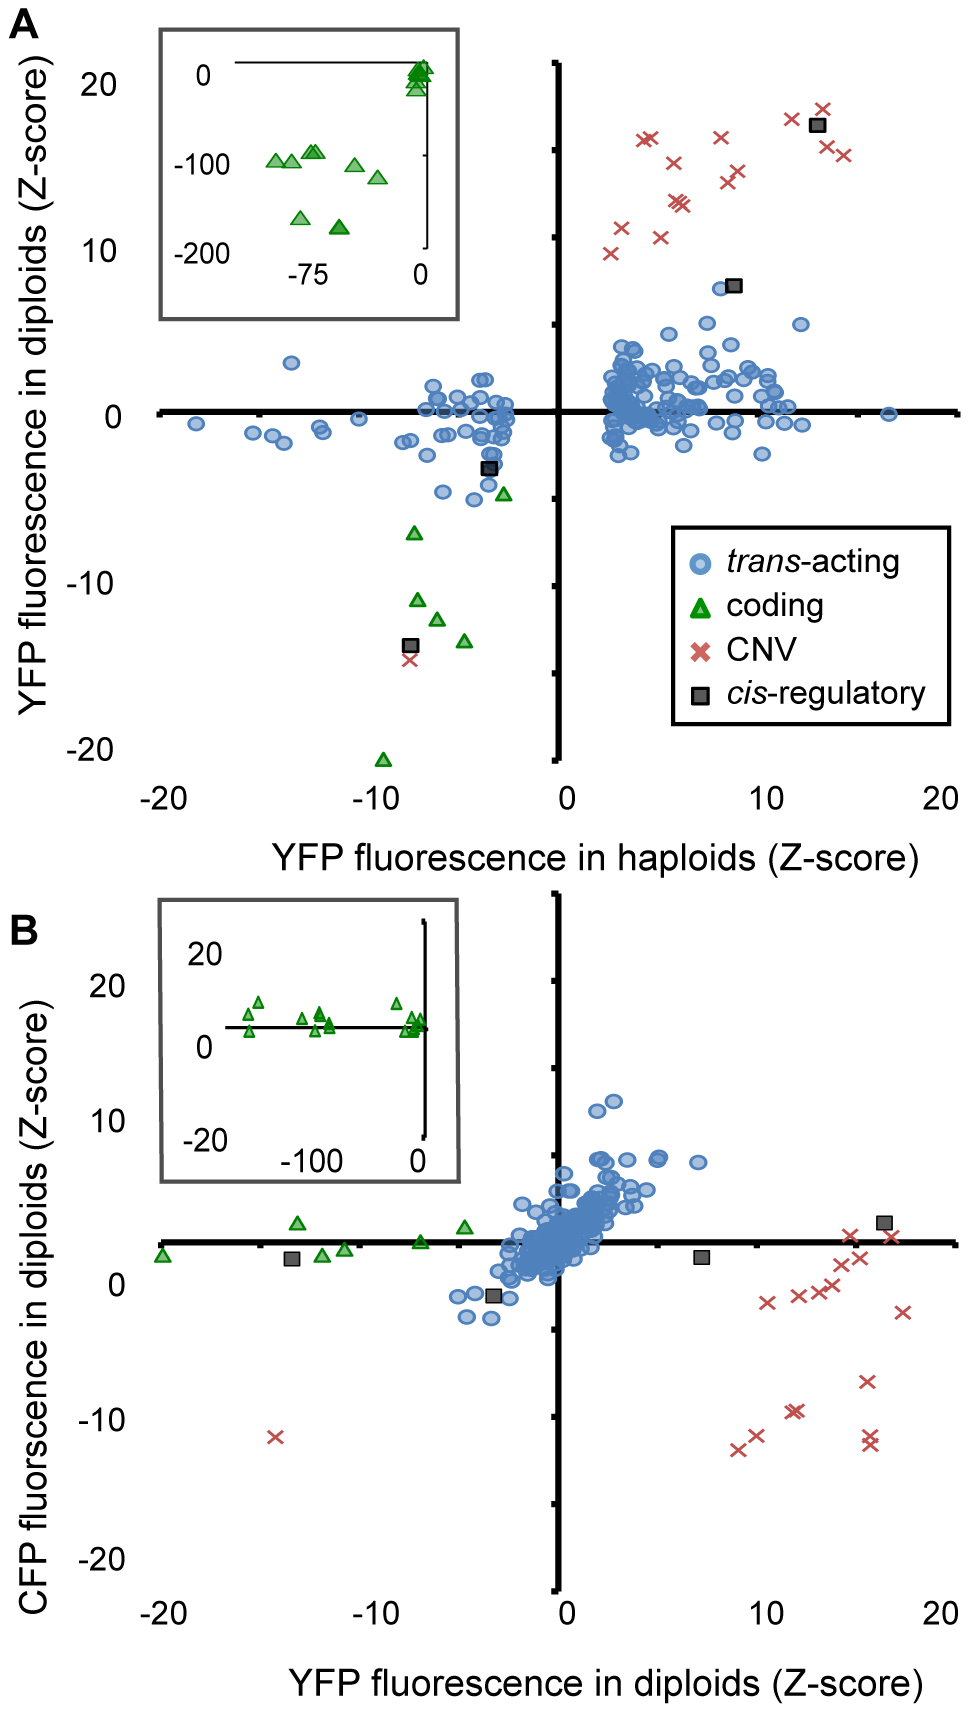 Effects of heterozygous mutant alleles on YFP and CFP fluorescence differ among mutational classes in diploid cells.